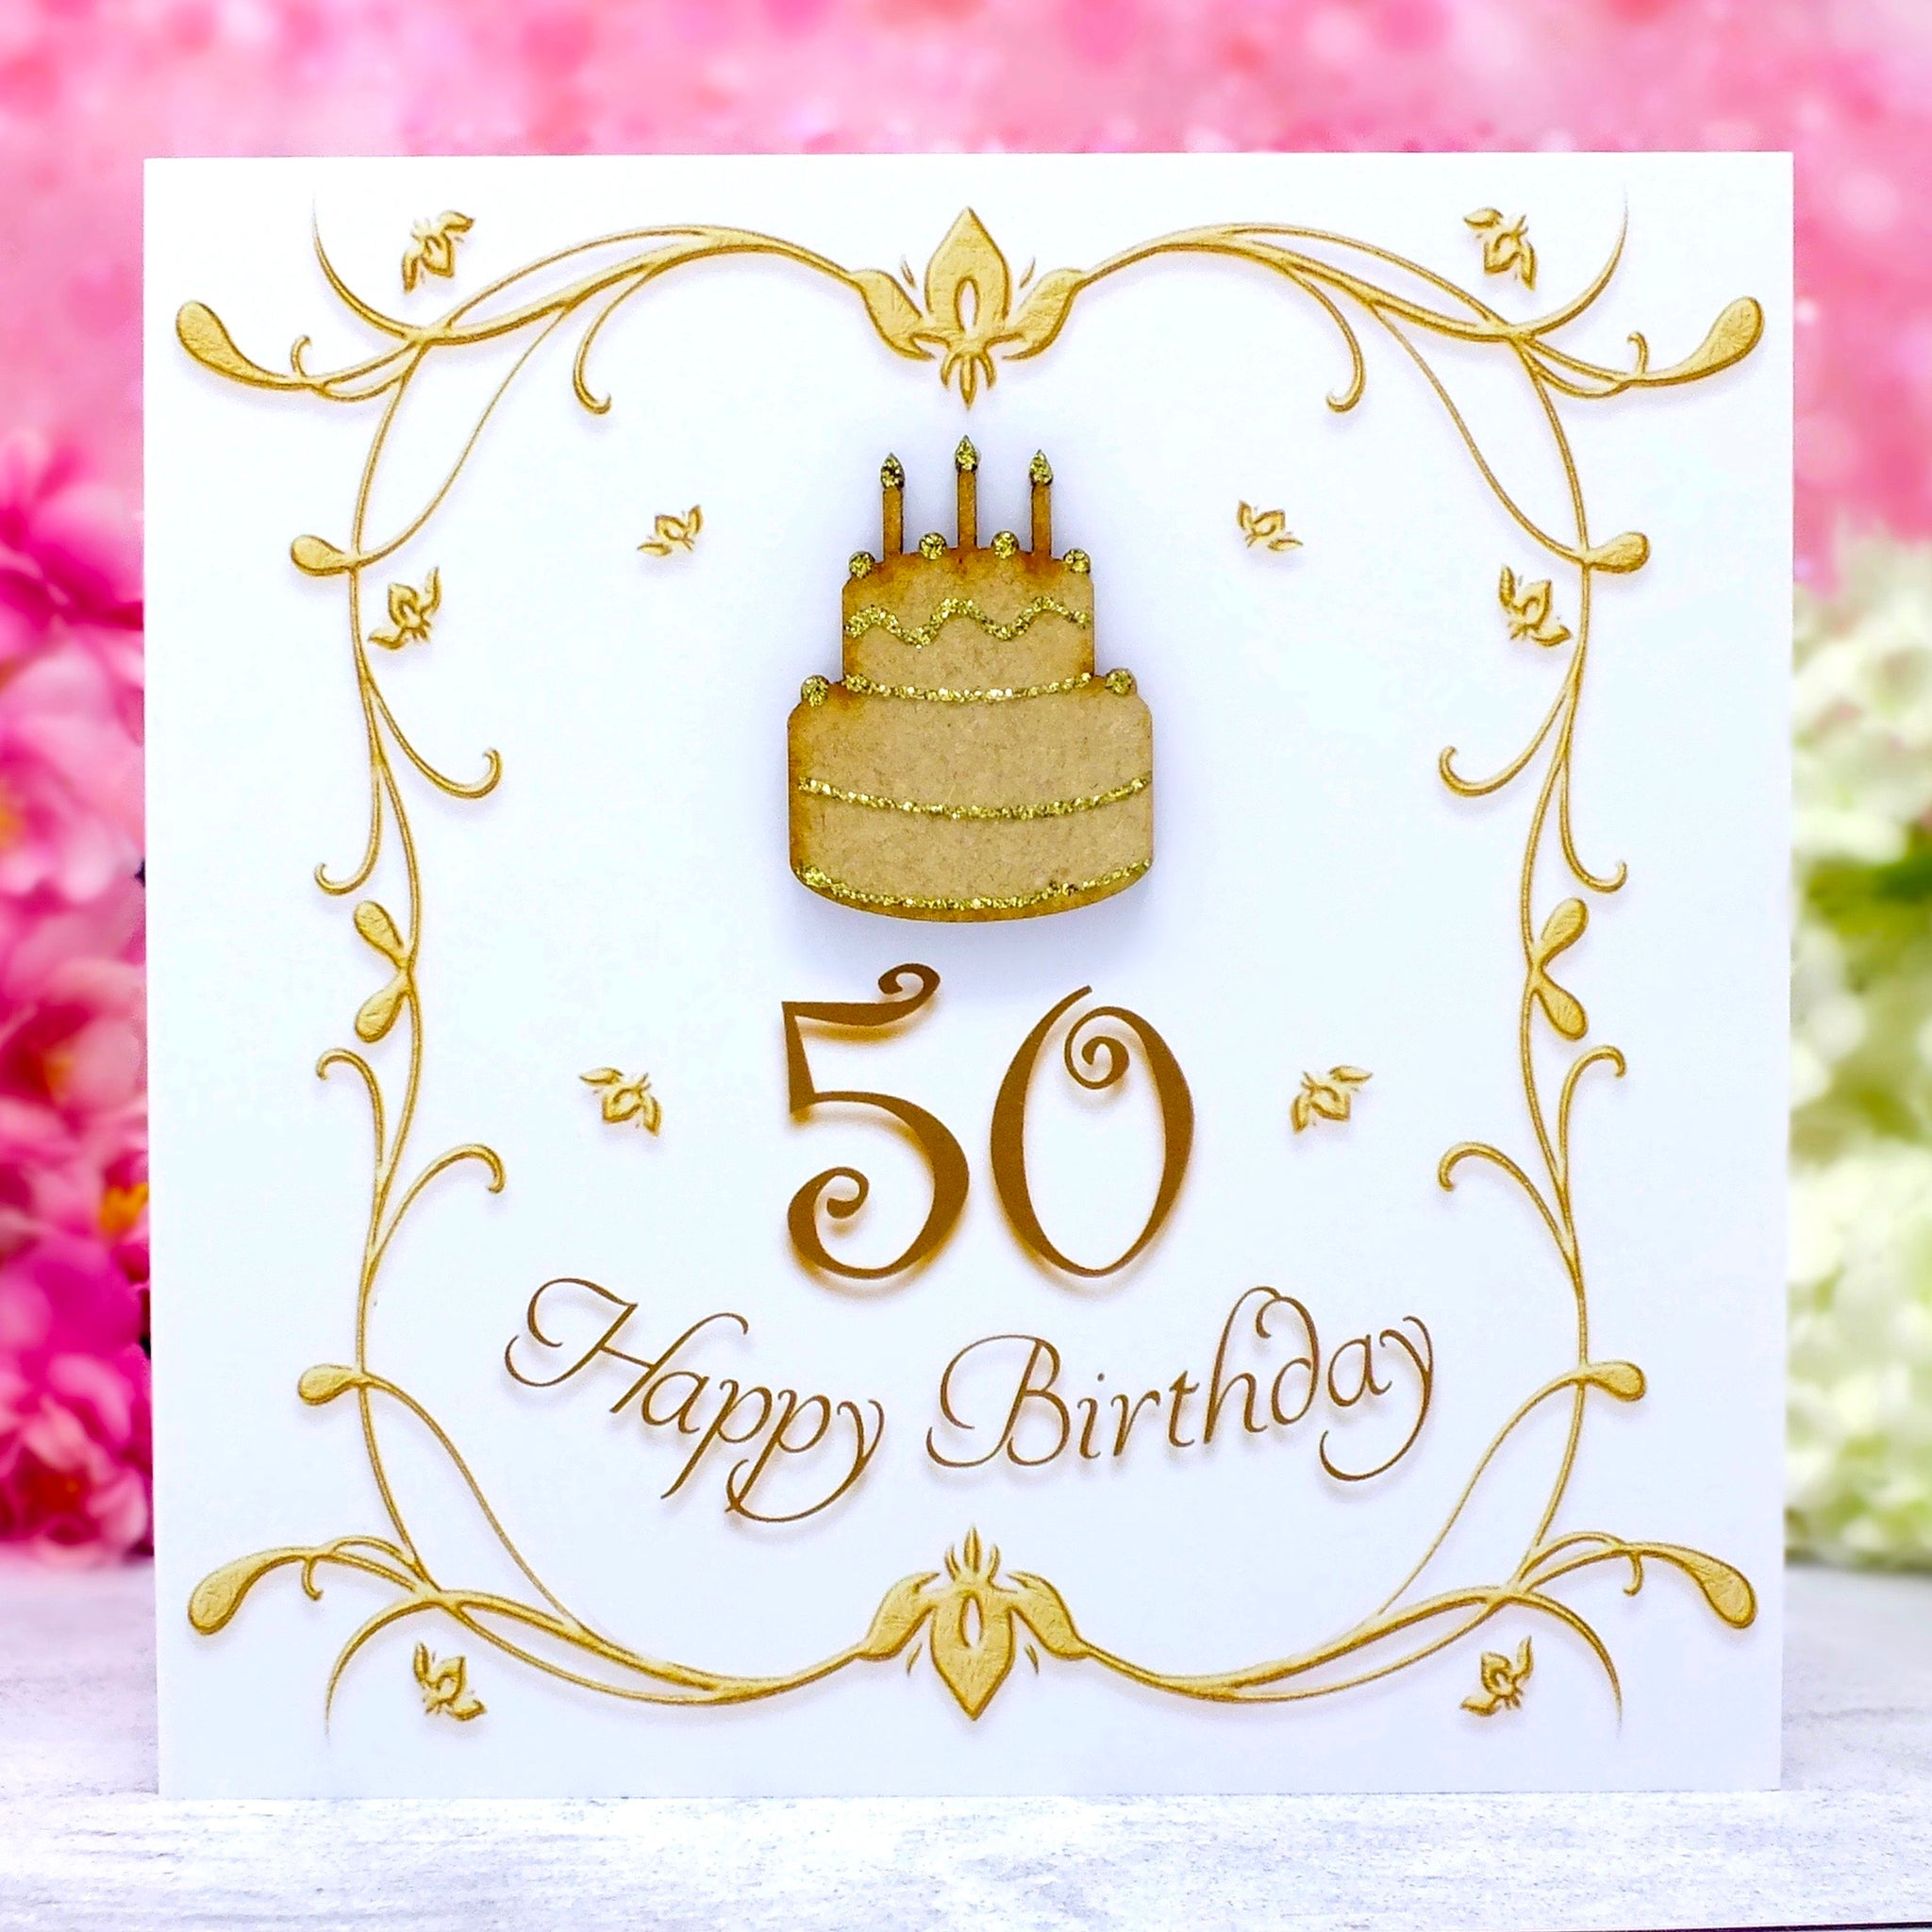 Luxury 50th Birthday Card - Wooden Birthday Cake